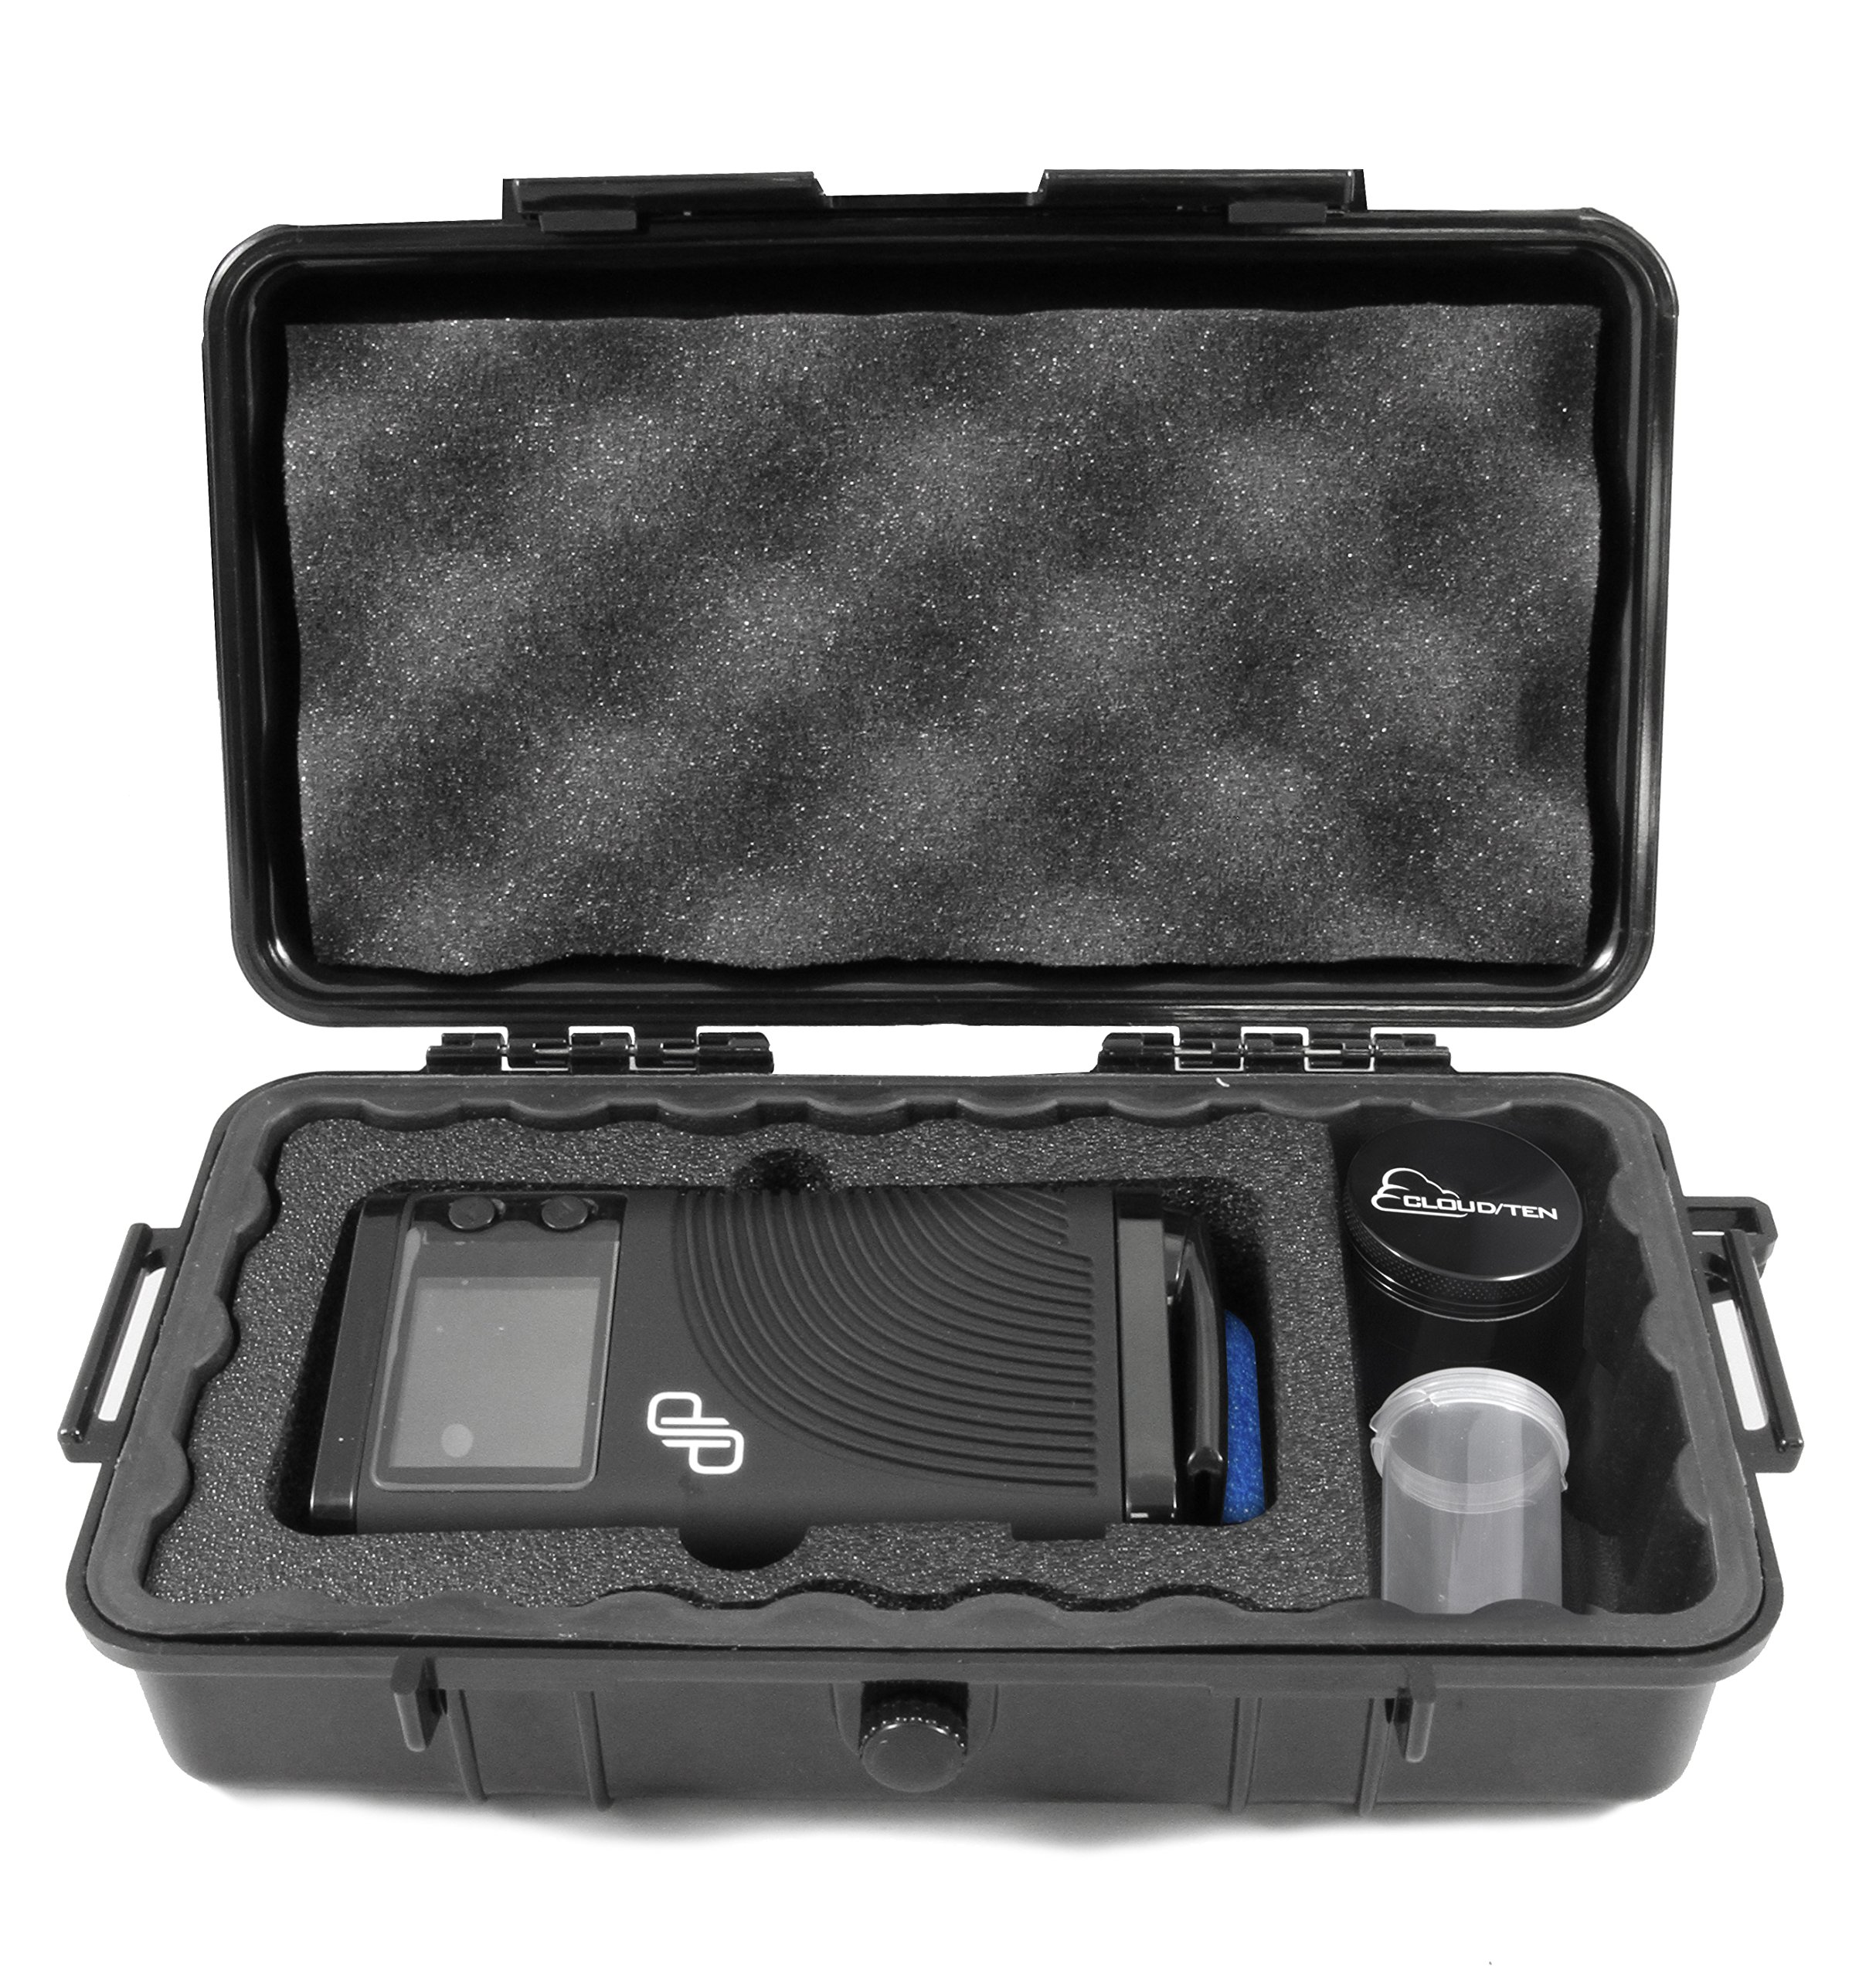 CLOUD/TEN Smell Odor Resistant Carry Case Designed For Boundless CFX, Pods, Cleaning Tools, USB Cable Charger - INCLUDES FREE GRINDER AND CANISTER